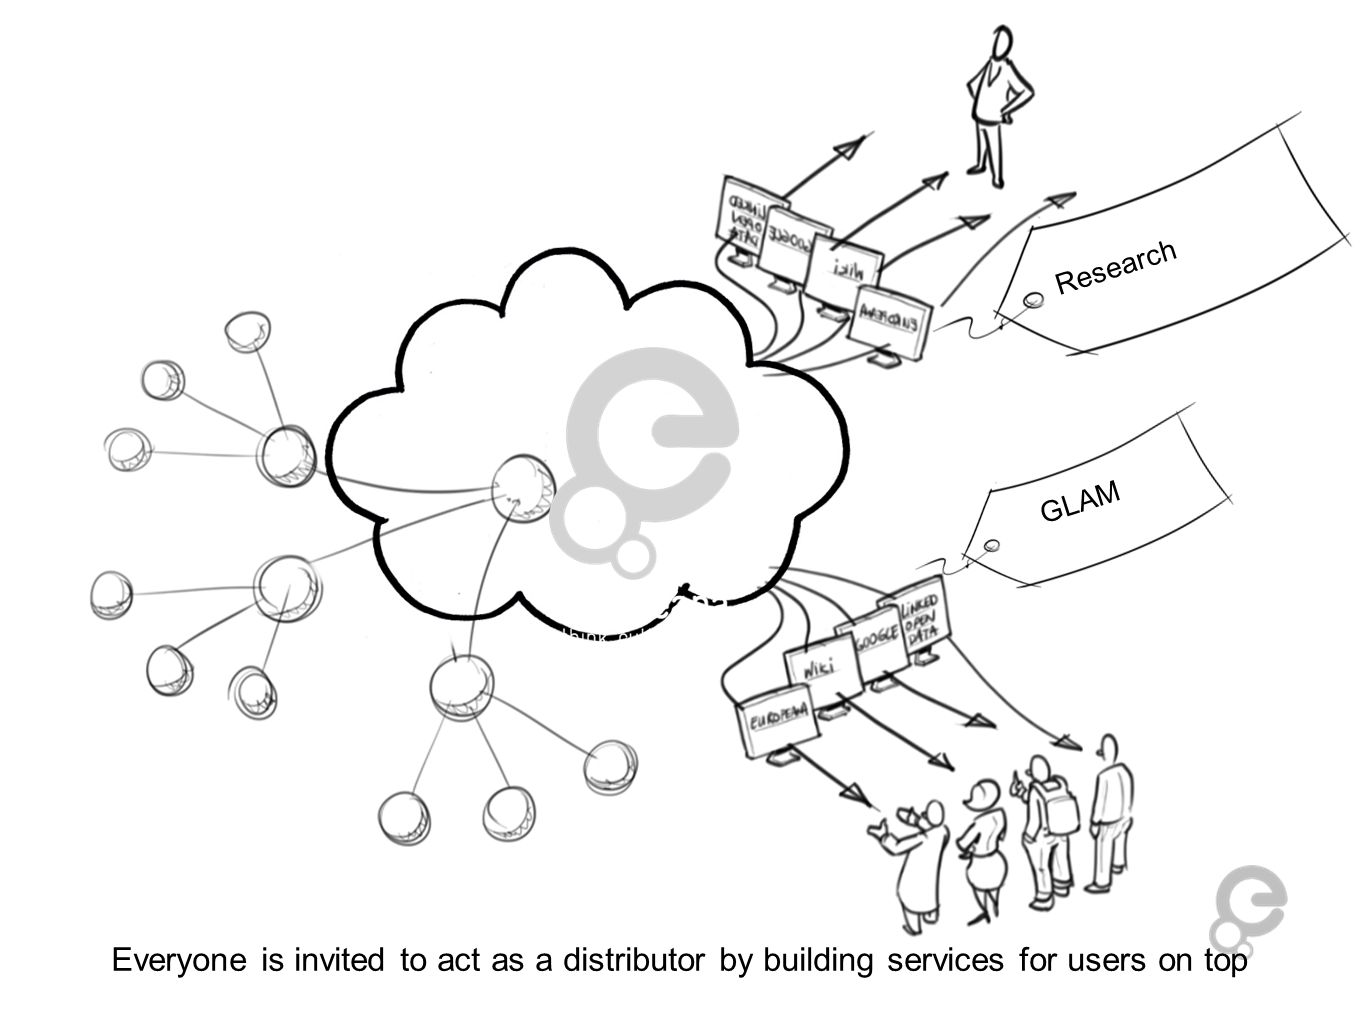 Everyone is invited to act as a distributor by building services for users on top GLAM Research